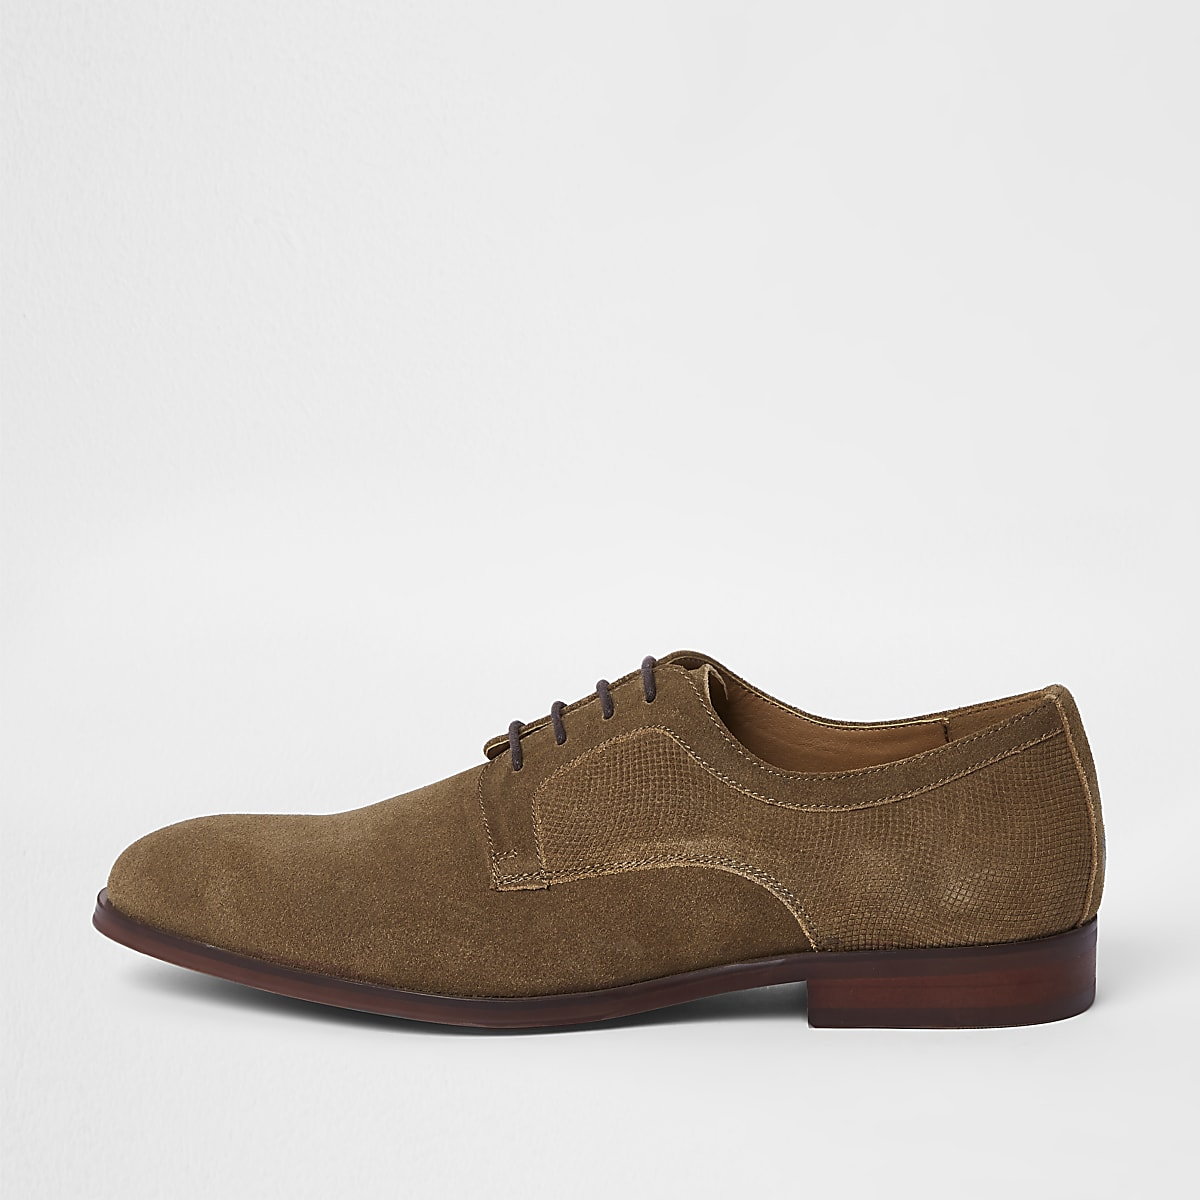 Stone suede textured derby shoes